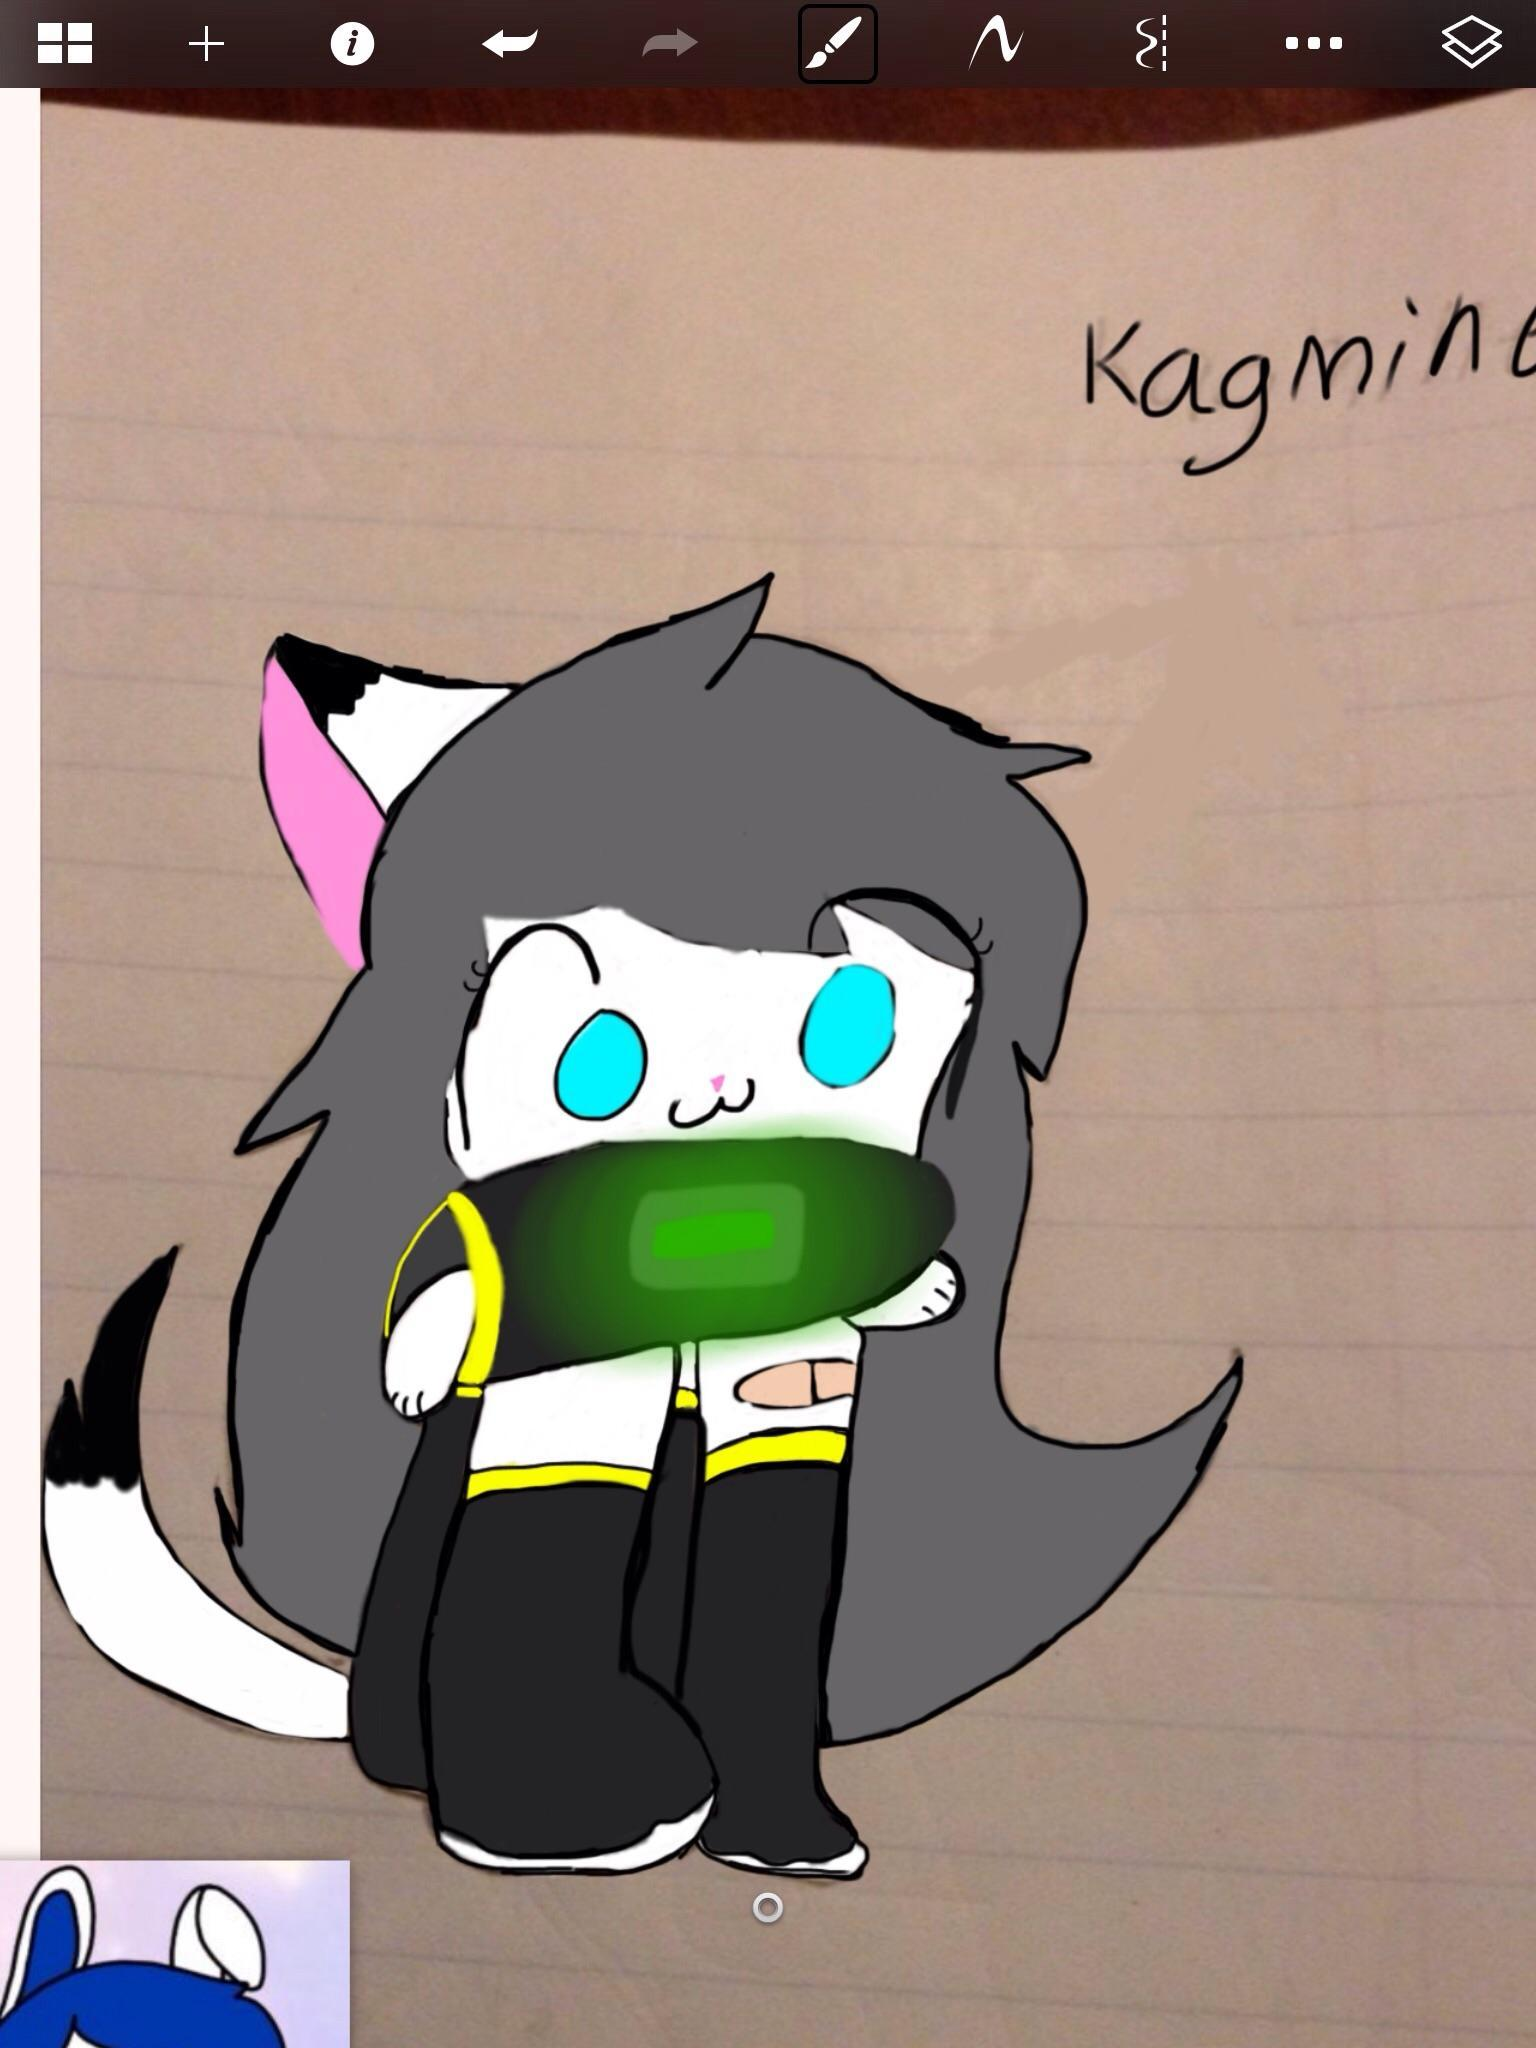 KawaiiCatFails